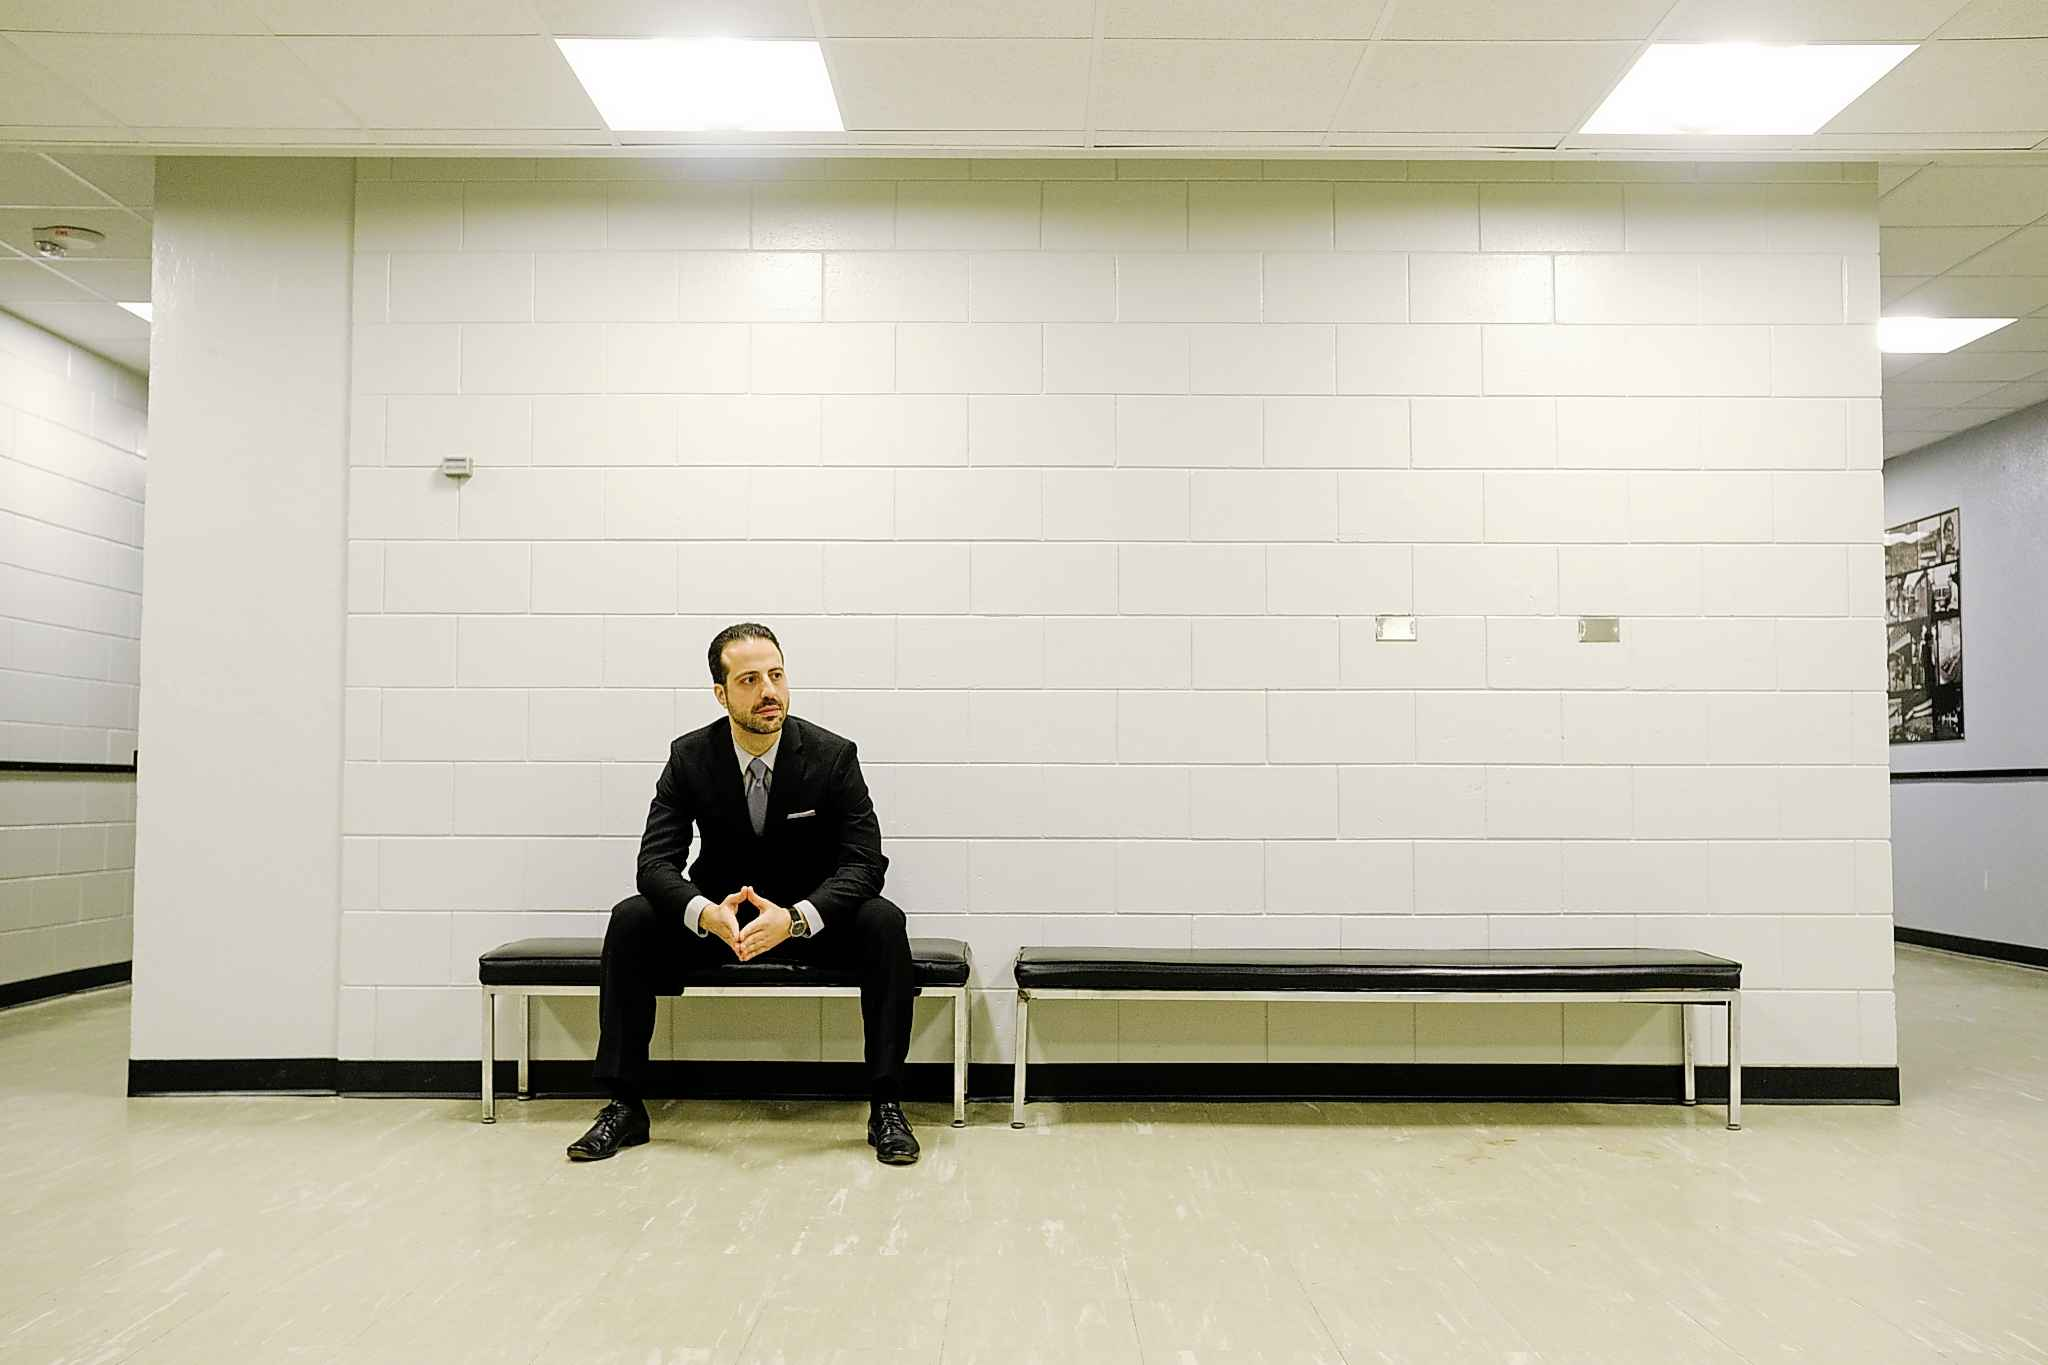 Composer Harry Stafylakis, backstage at the Centennial Concert Hall Saturday night after his piece Sun Exhaling Light was performed by the Winnipeg Symphony Orchestra as part of the Winnipeg New Music Festival. (Mike Sudoma / Winnipeg Free Press)</p>